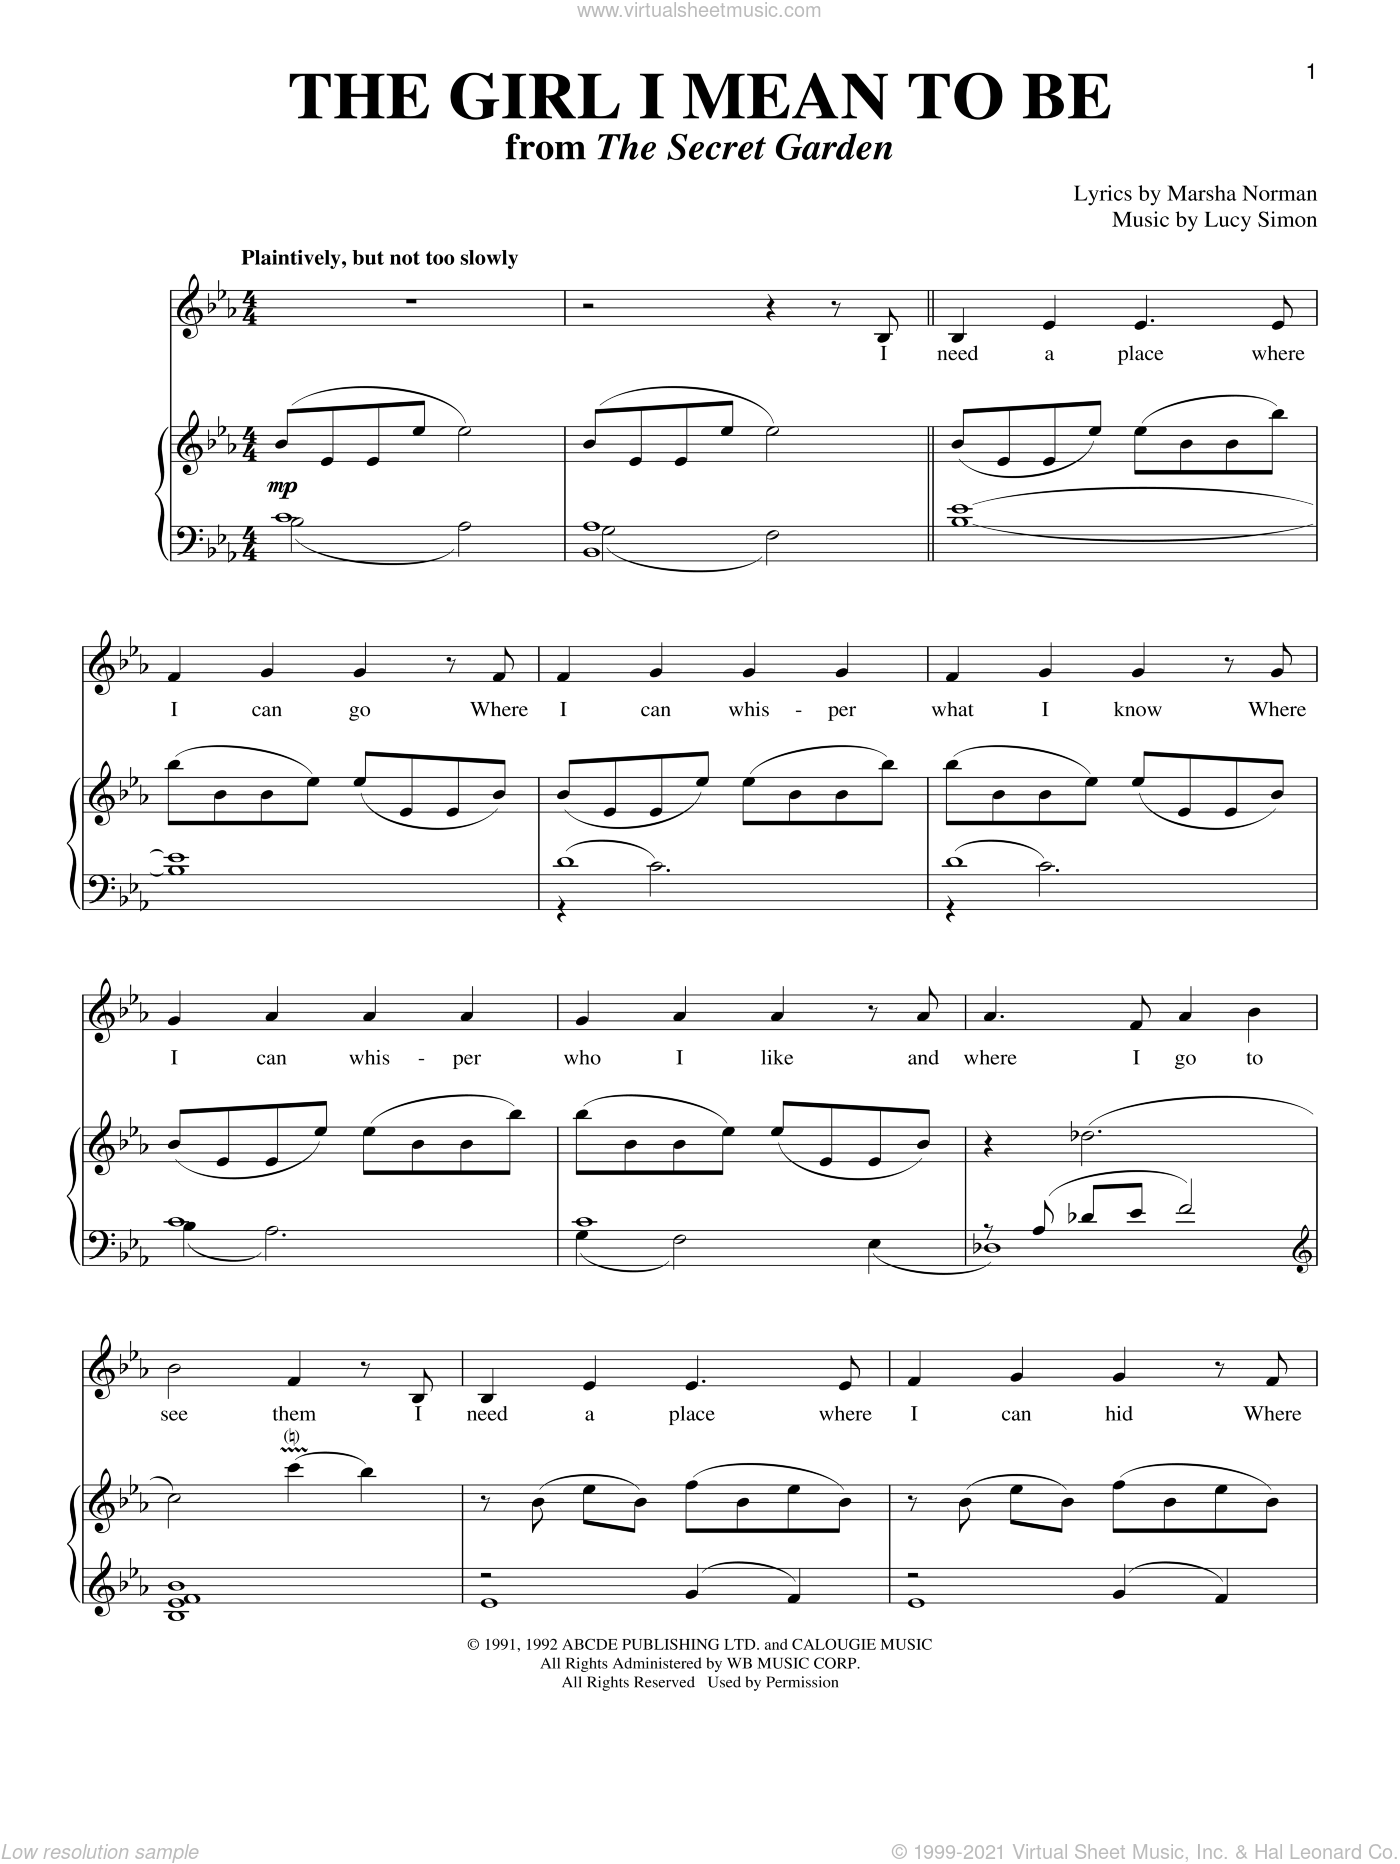 The Girl I Mean To Be sheet music for voice and piano by Marsha Norman and Lucy Simon, intermediate skill level